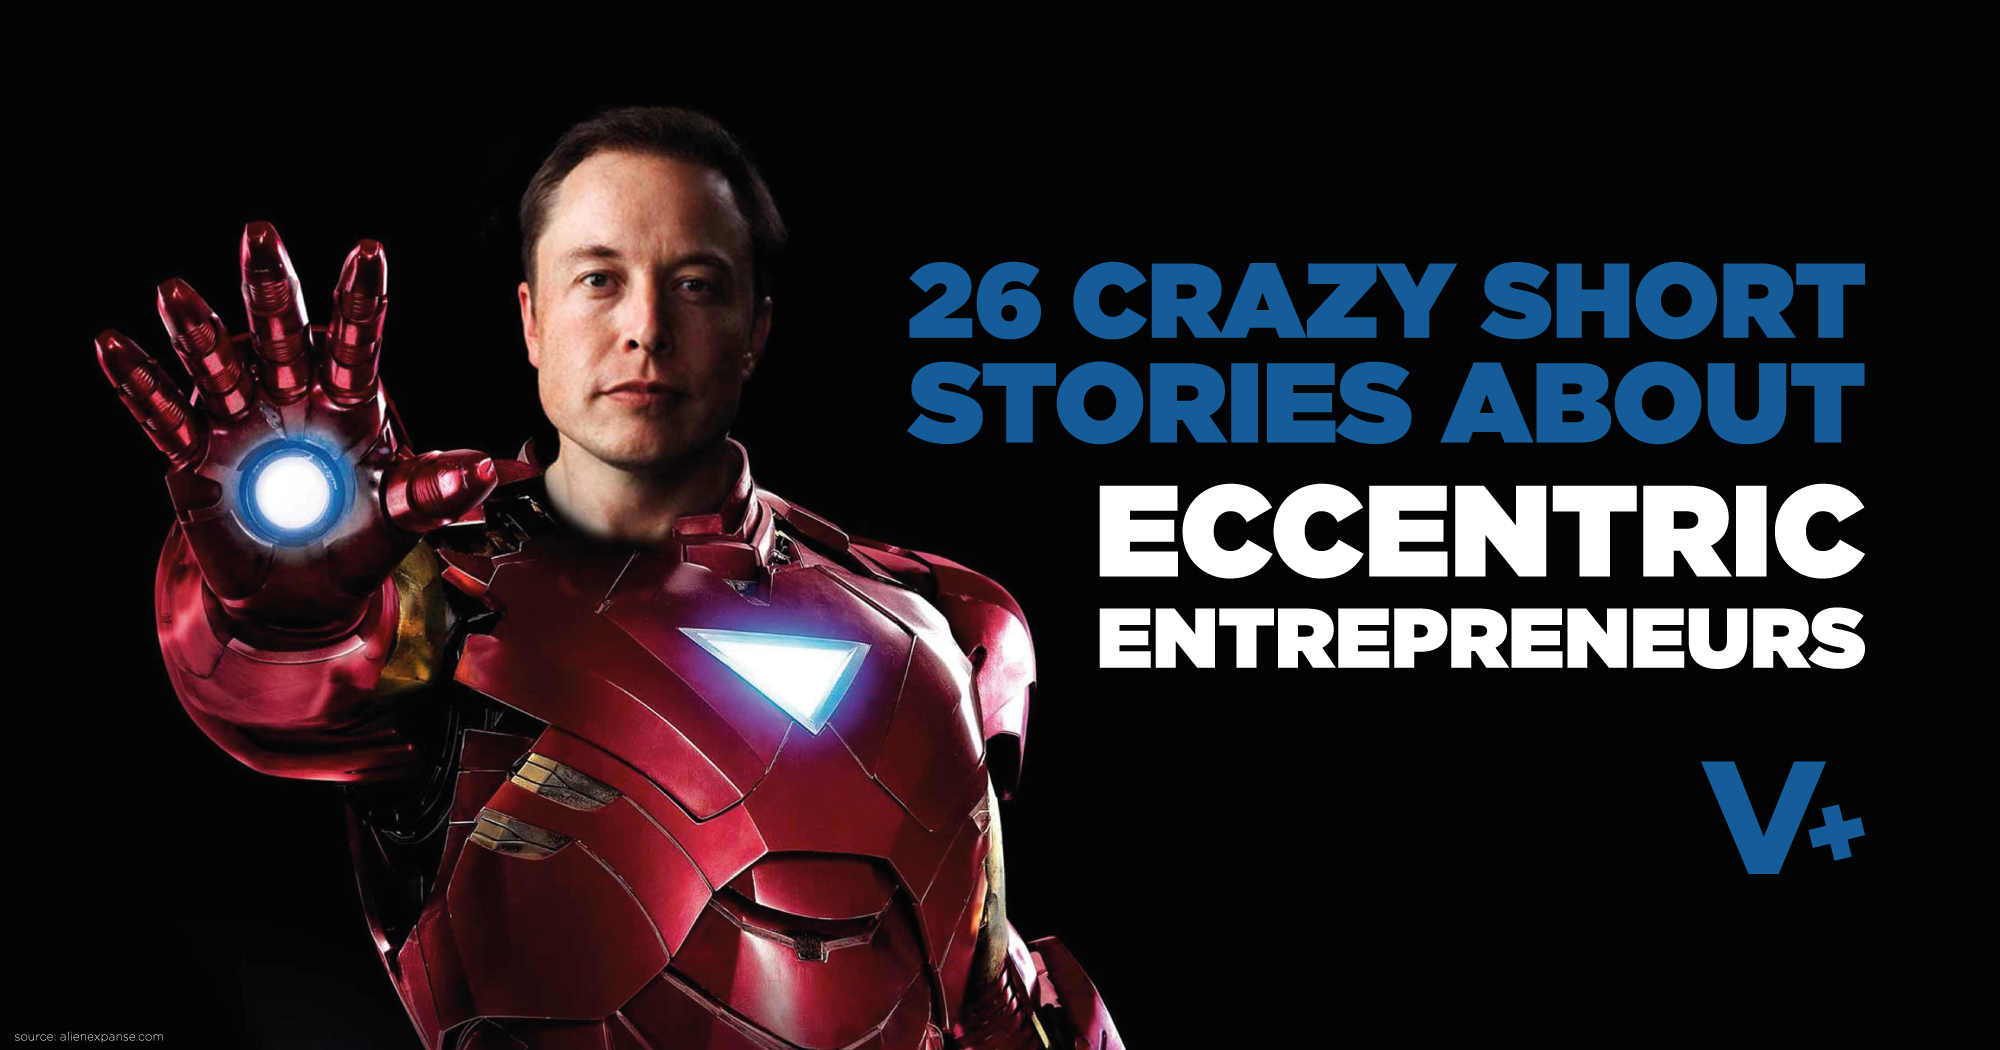 26 Crazy Short Stories About Eccentric Entrepreneurs